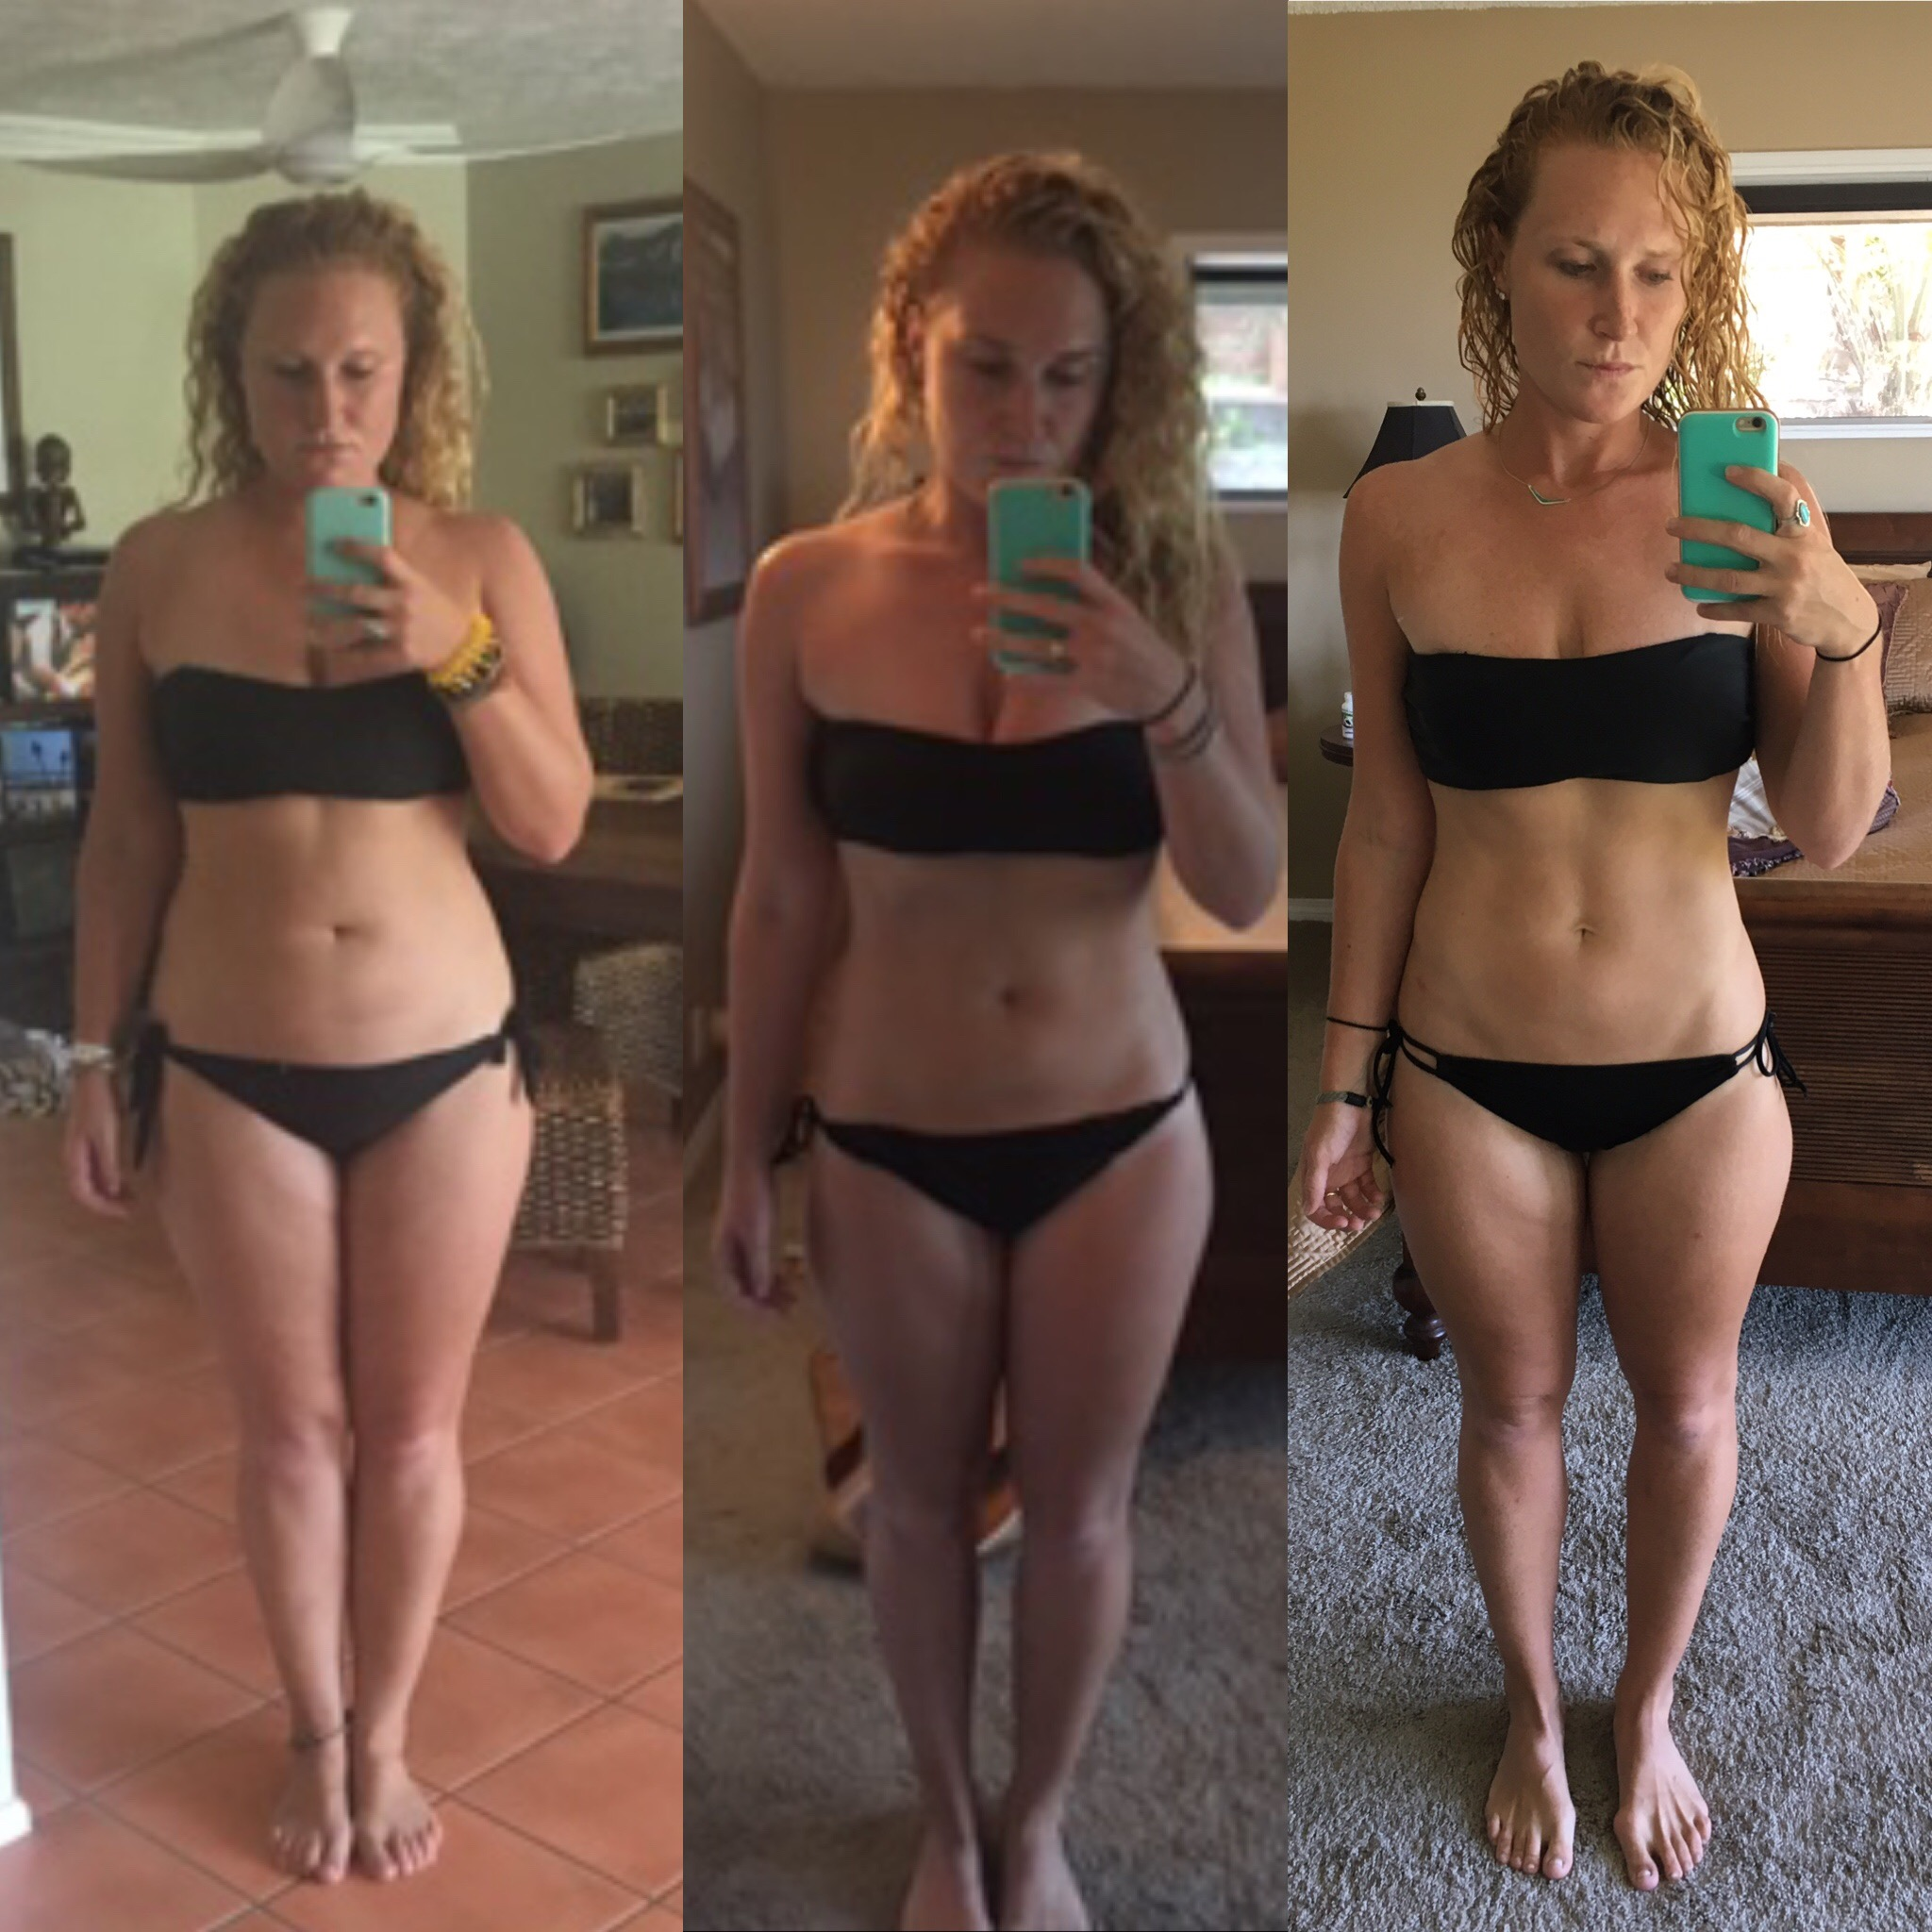 My progress thus far | March 16, 2016 vs. March 17, 2017 vs. June 16, 2017 | I was stuck in an eating disorder for so long I was afraid of using the scale with fear it would become an addiction again. Now,I am proud to say I have no fear of the scale and use it only every so often. I used Kayla Itsines BBG program & daily yoga to gain more definition in my body while eating a balanced diet with moderation as the key for success.